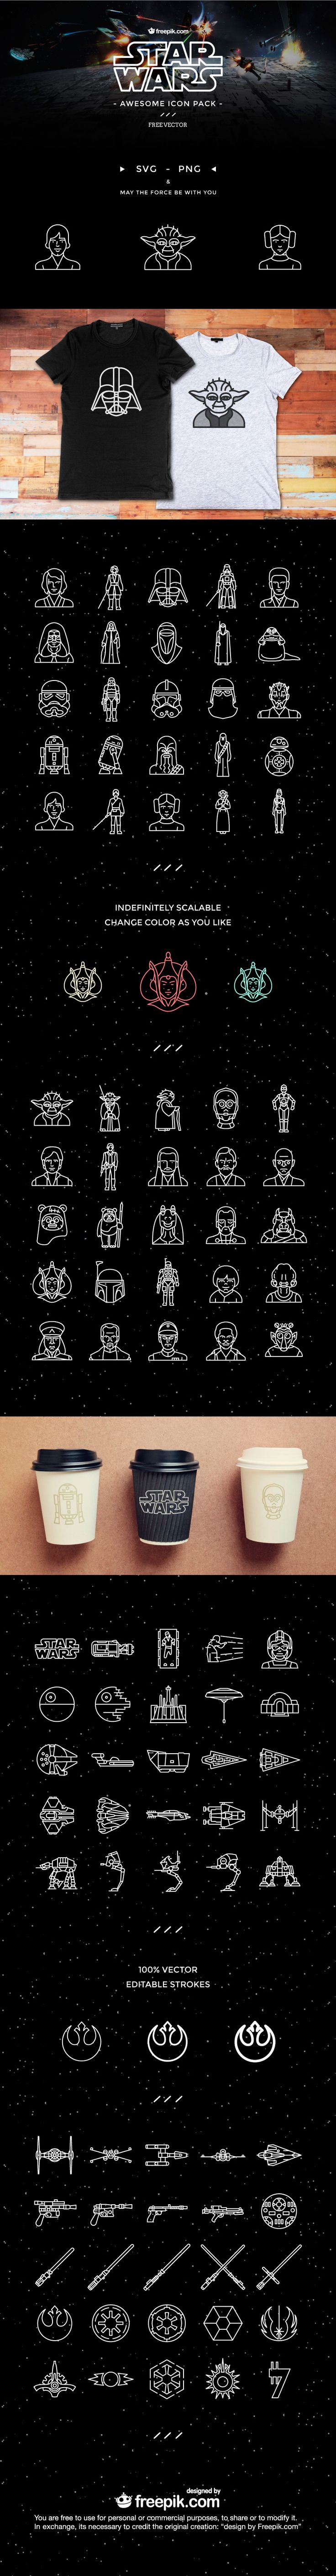 An amazing pack of 100 FREE Star Wars icons designed exclusively by Freepik. All your favourite characters are there, including Yoda, Luke, Darth Vader, R2D2 and even Jar Jar Binks!